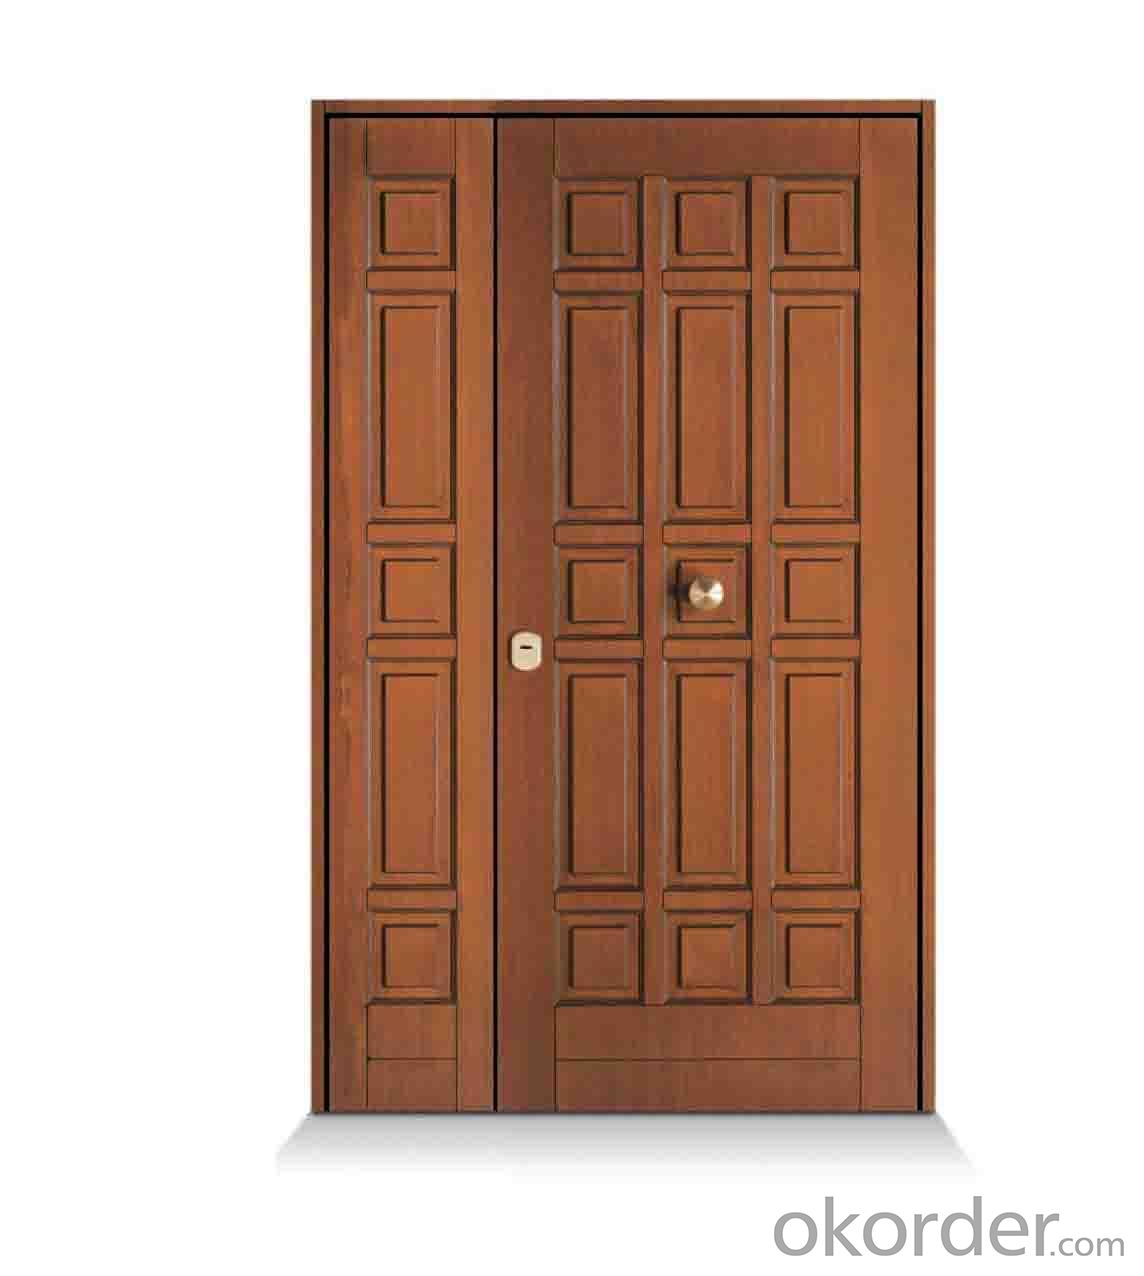 PVC door, melamine door, wood veneer door, mould door